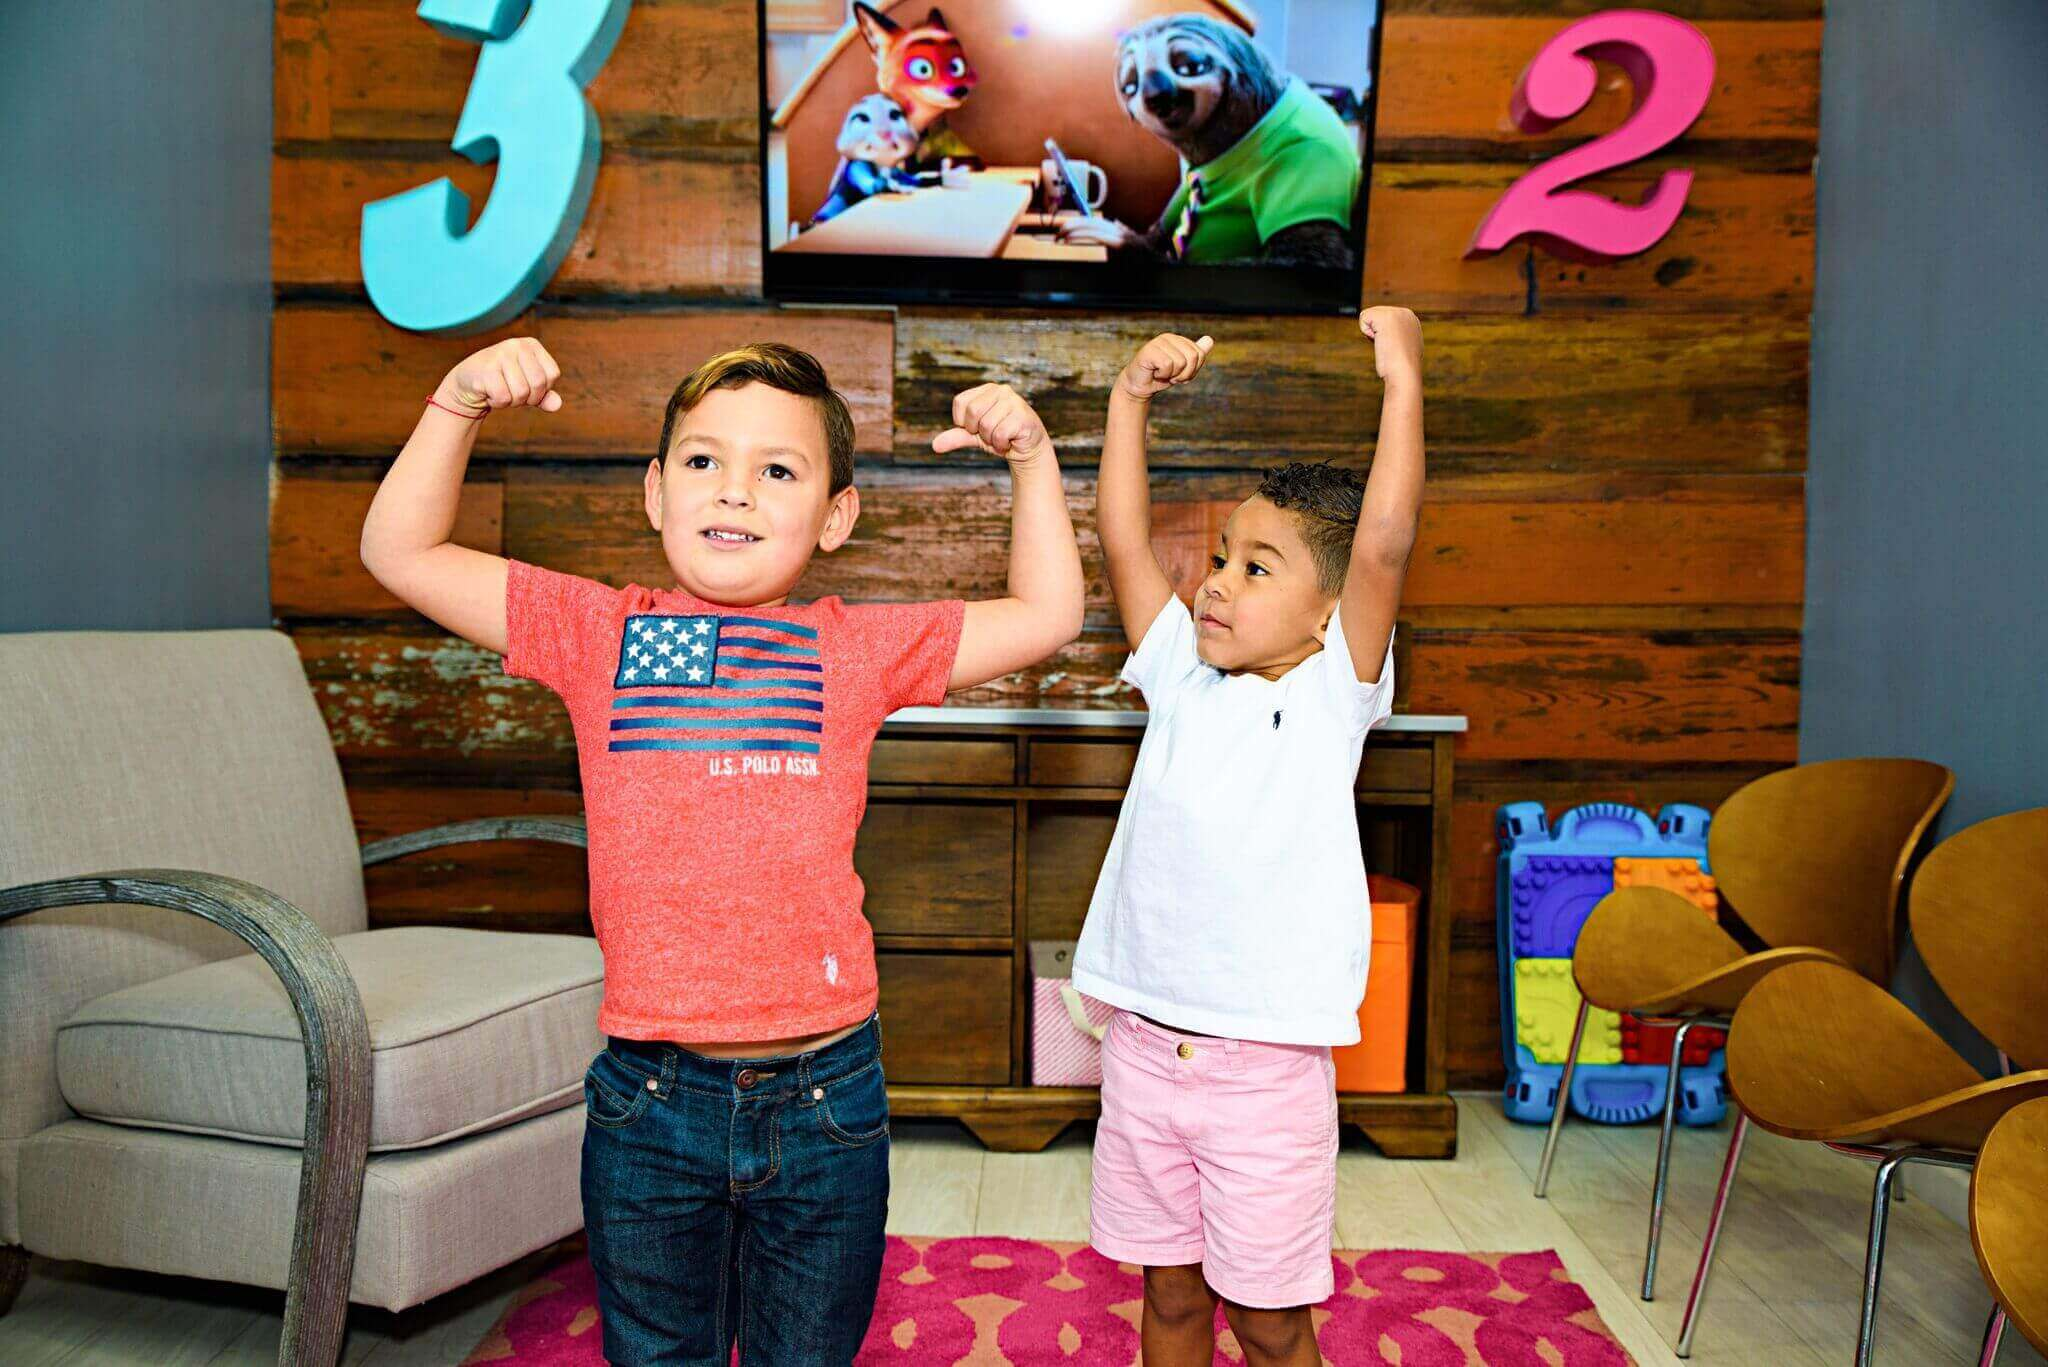 Two young patient boys flexing their hero muscles in the kids play area in Route 32 Dental office